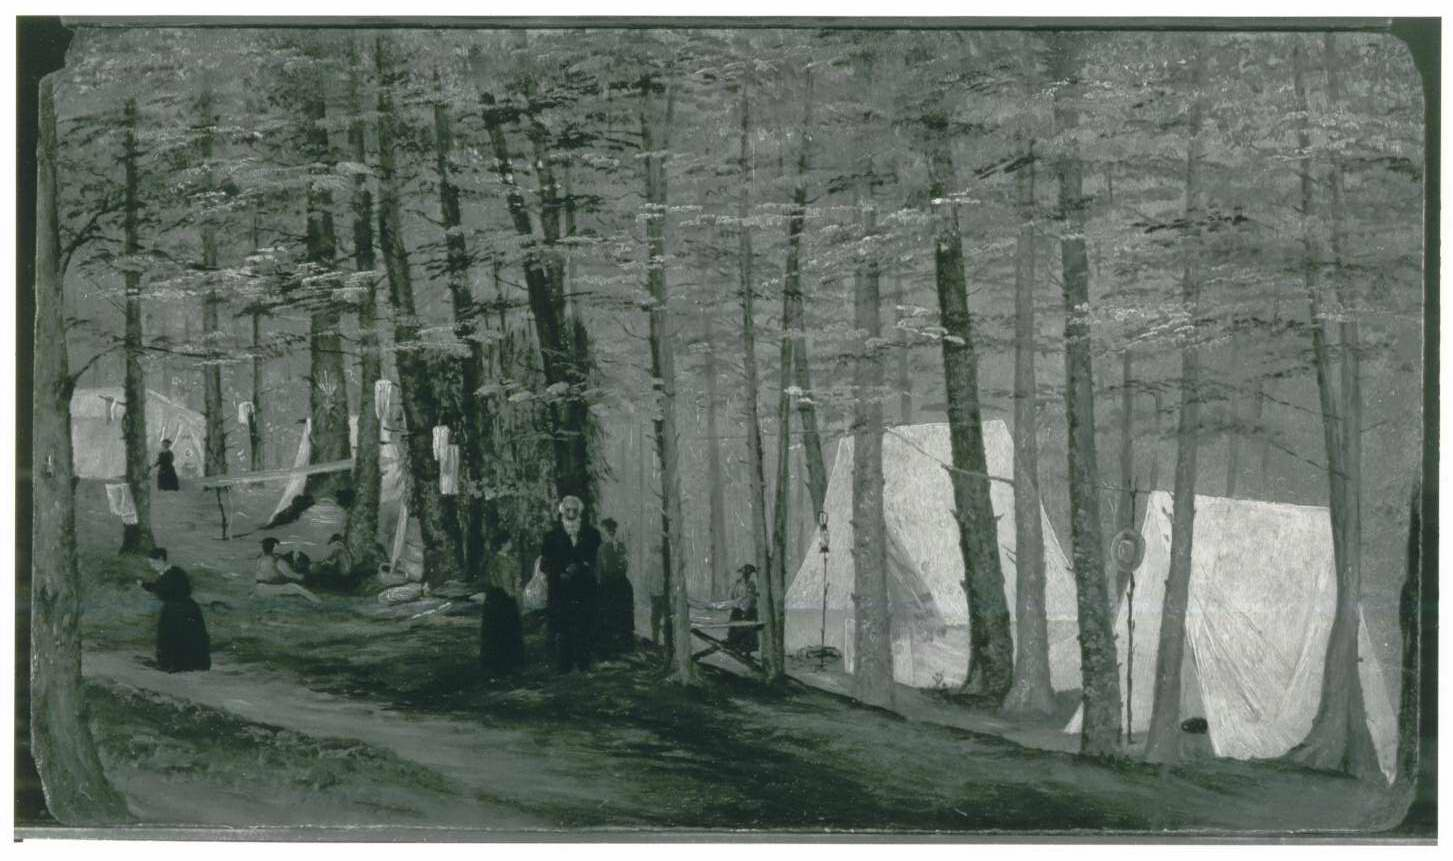 Camp Fern on the slopes of Mount Greylock, circa 1870. Photo courtesy of Williamstown House of Local History